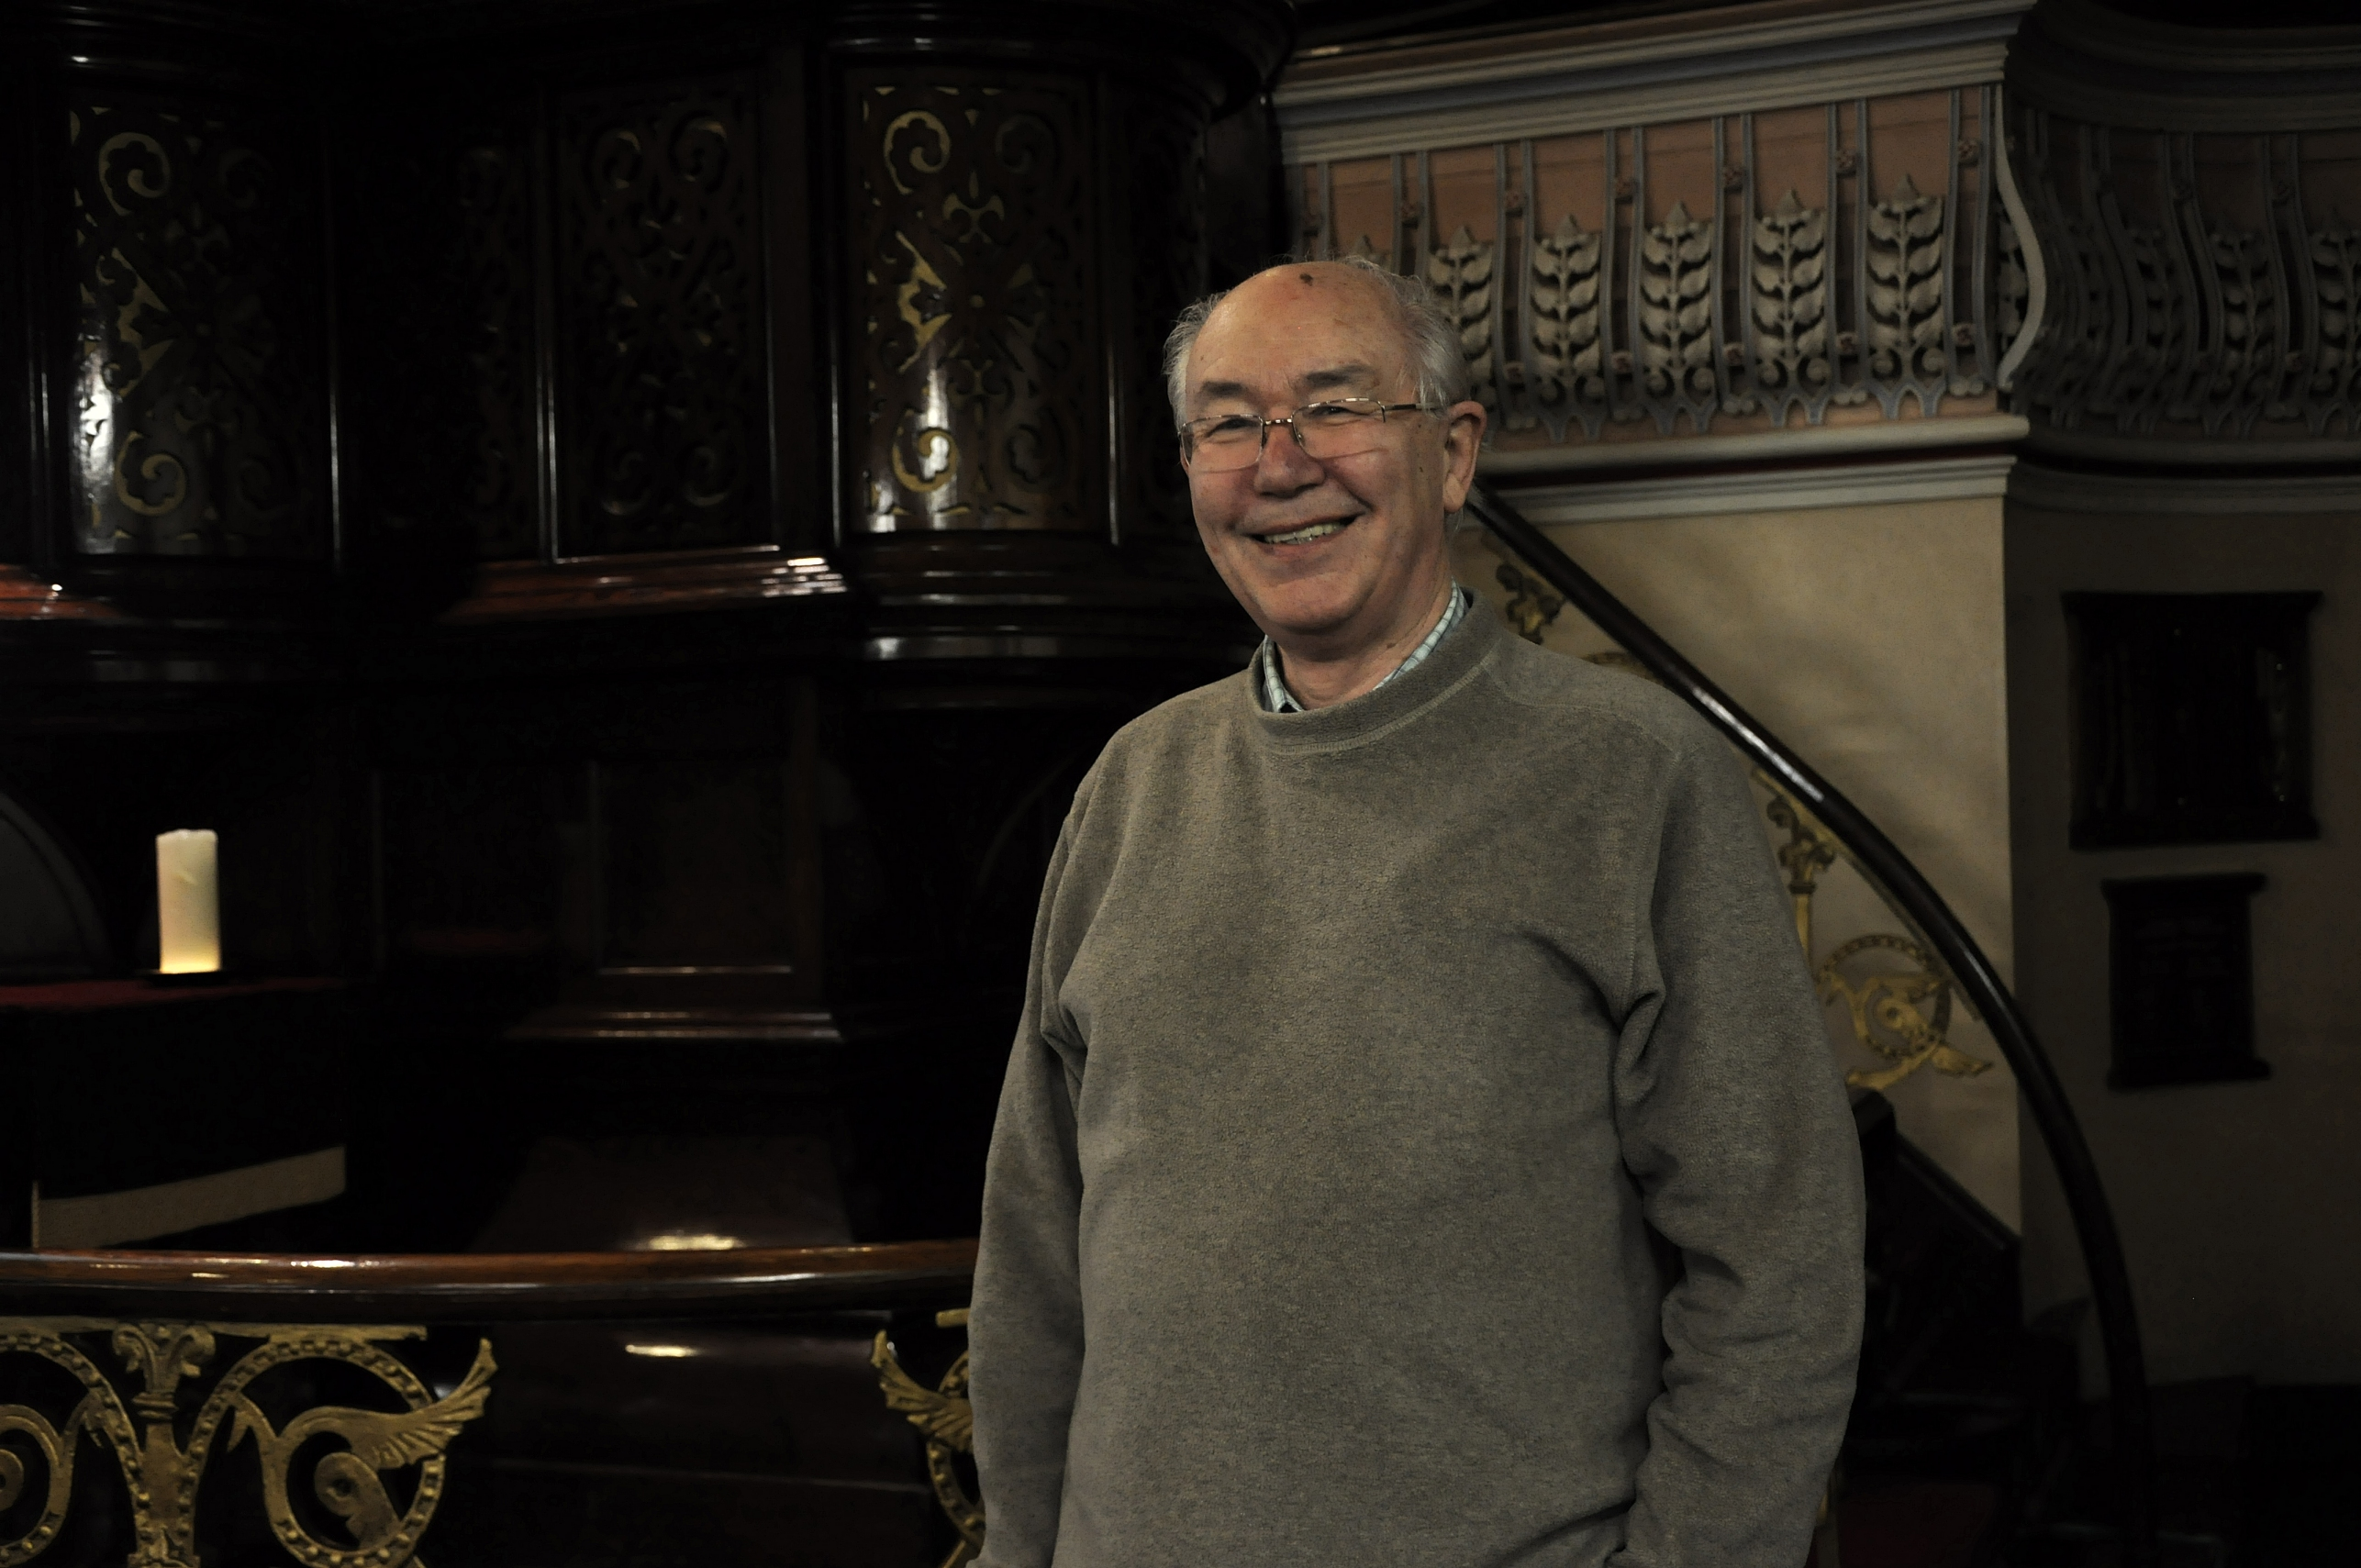 Michael Tranter prior to giving a talk on Lord Leverhulme